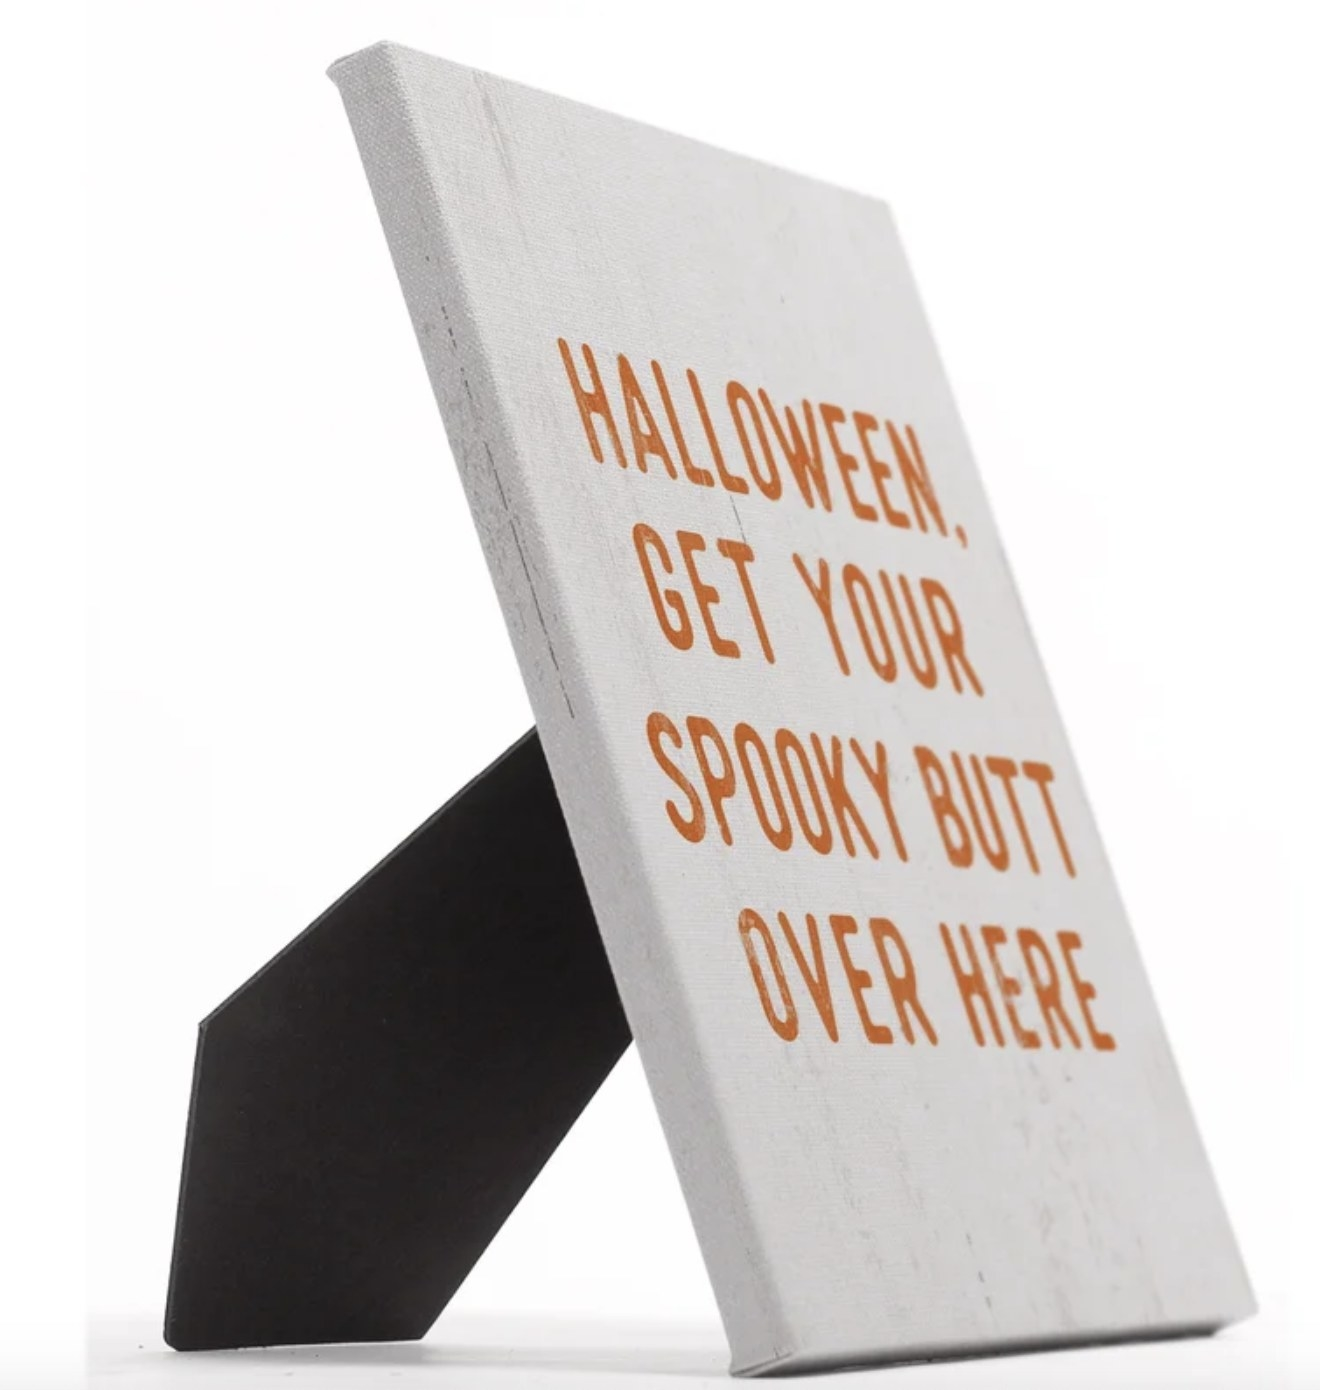 """The white sign says """"HALLOWEEN, GET YOUR SPOOKY BUTT OVER HERE"""" and has a black easel back"""